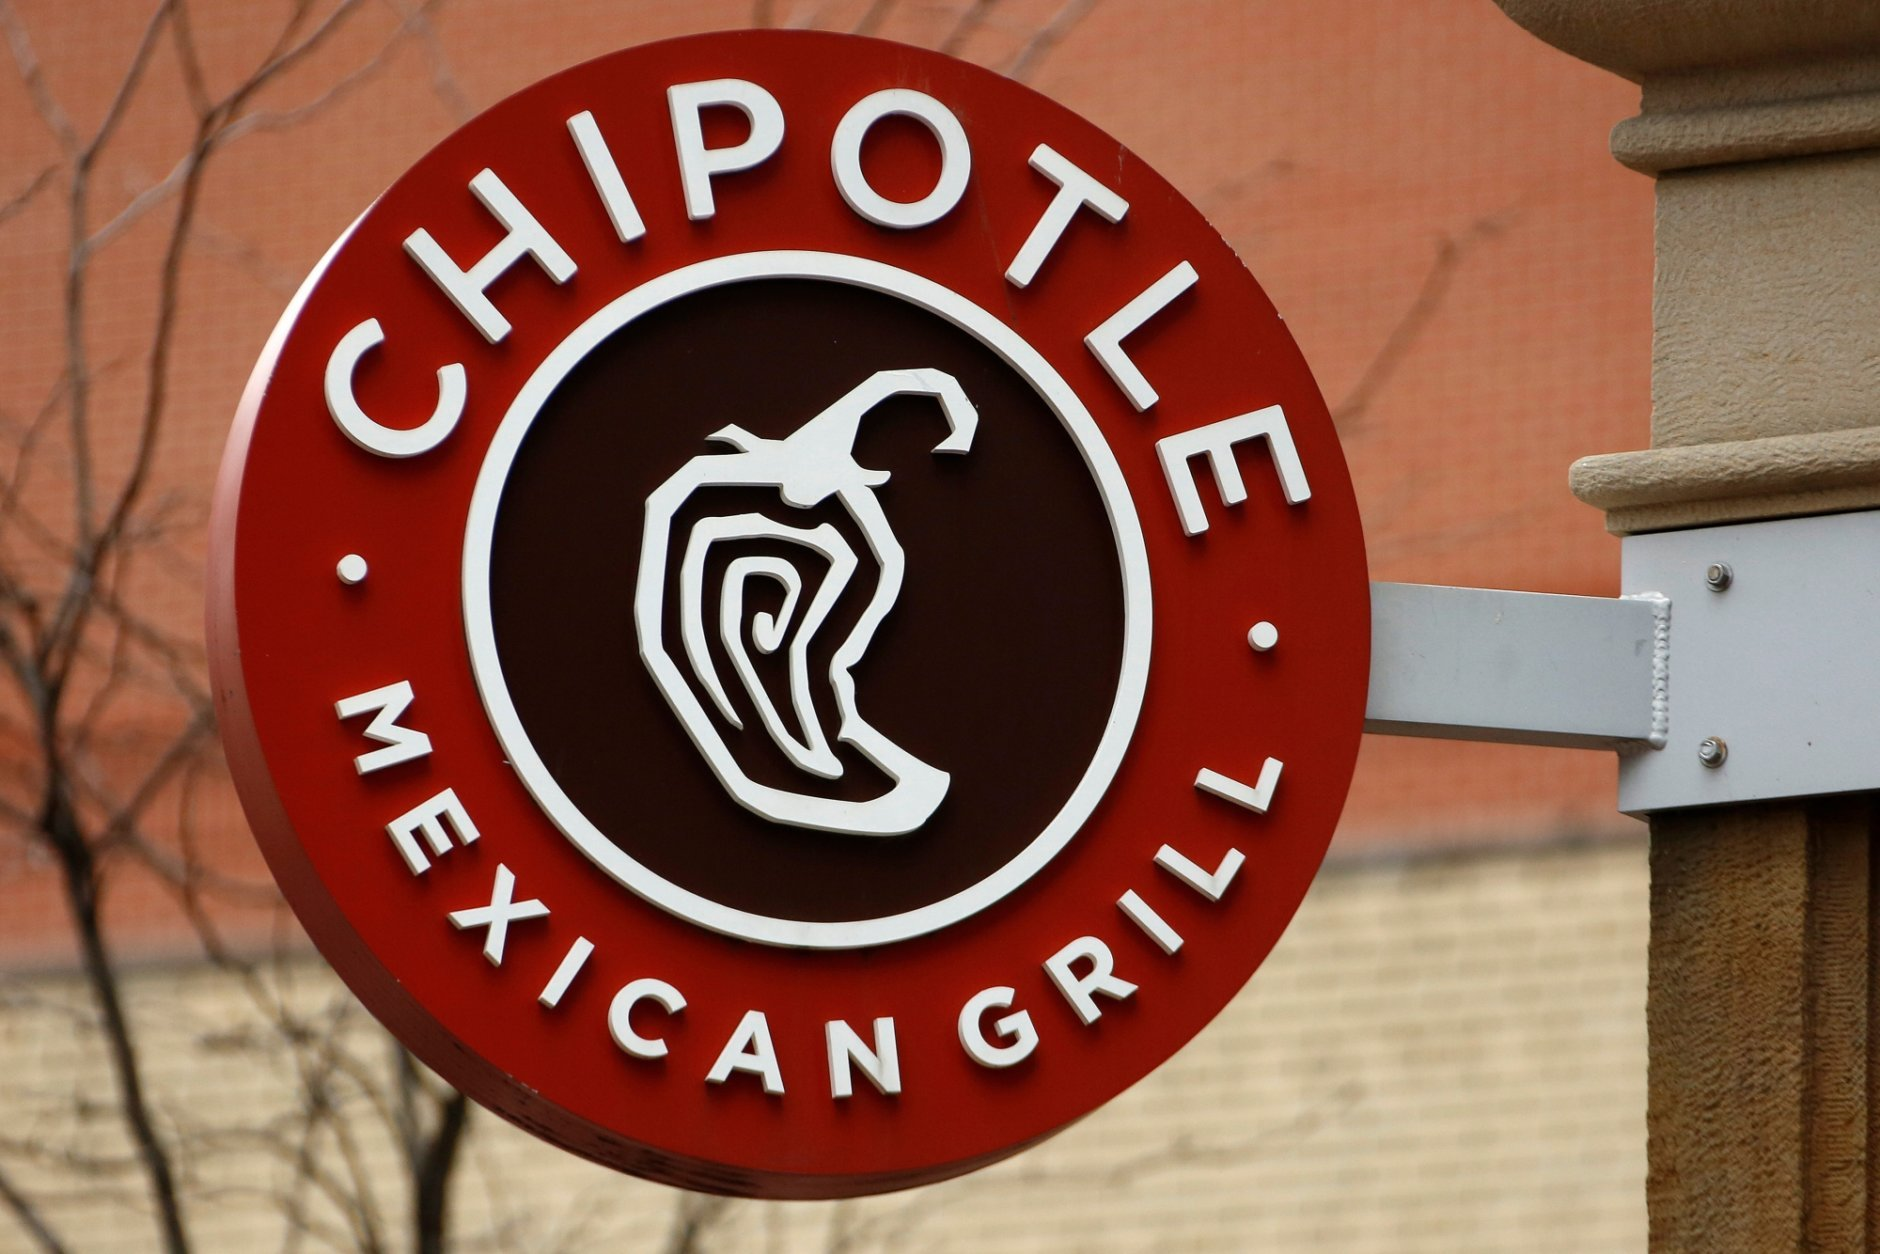 "FILE - This Jan. 12, 2017, file photo shows the sign on a Chipotle restaurant in Pittsburgh. Chipotle is not giving away $100 gift cards for National Avocado Day on Tuesday, July 31, 2018, or any other day for that matter. The false offer, which has been circulating widely on social media in recent days, provides a link that takes users to a page that reads ""National Avocado Day Get a $100 Chipotle Card."" (AP Photo/Gene J. Puskar, File)"